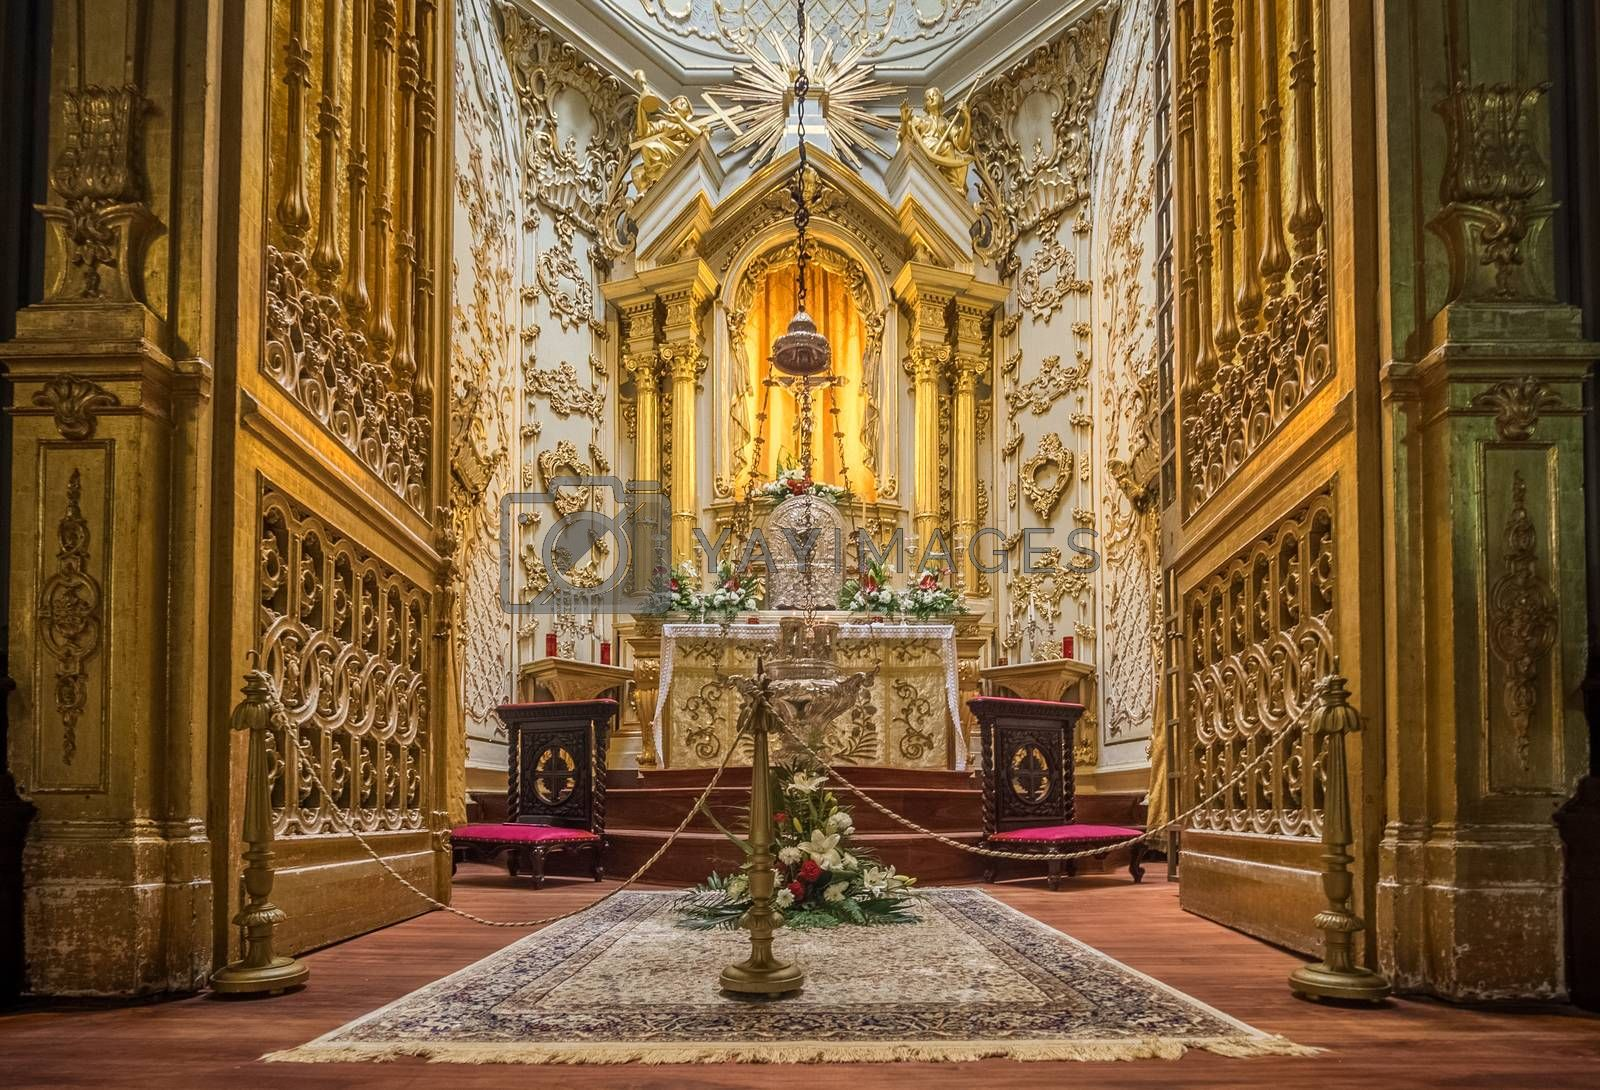 Stunning altar in the Church of San Sebastian in Ponta Delgada, Sao Miguel Island, Azores, Portugal. Picture taken 27th January 2016.